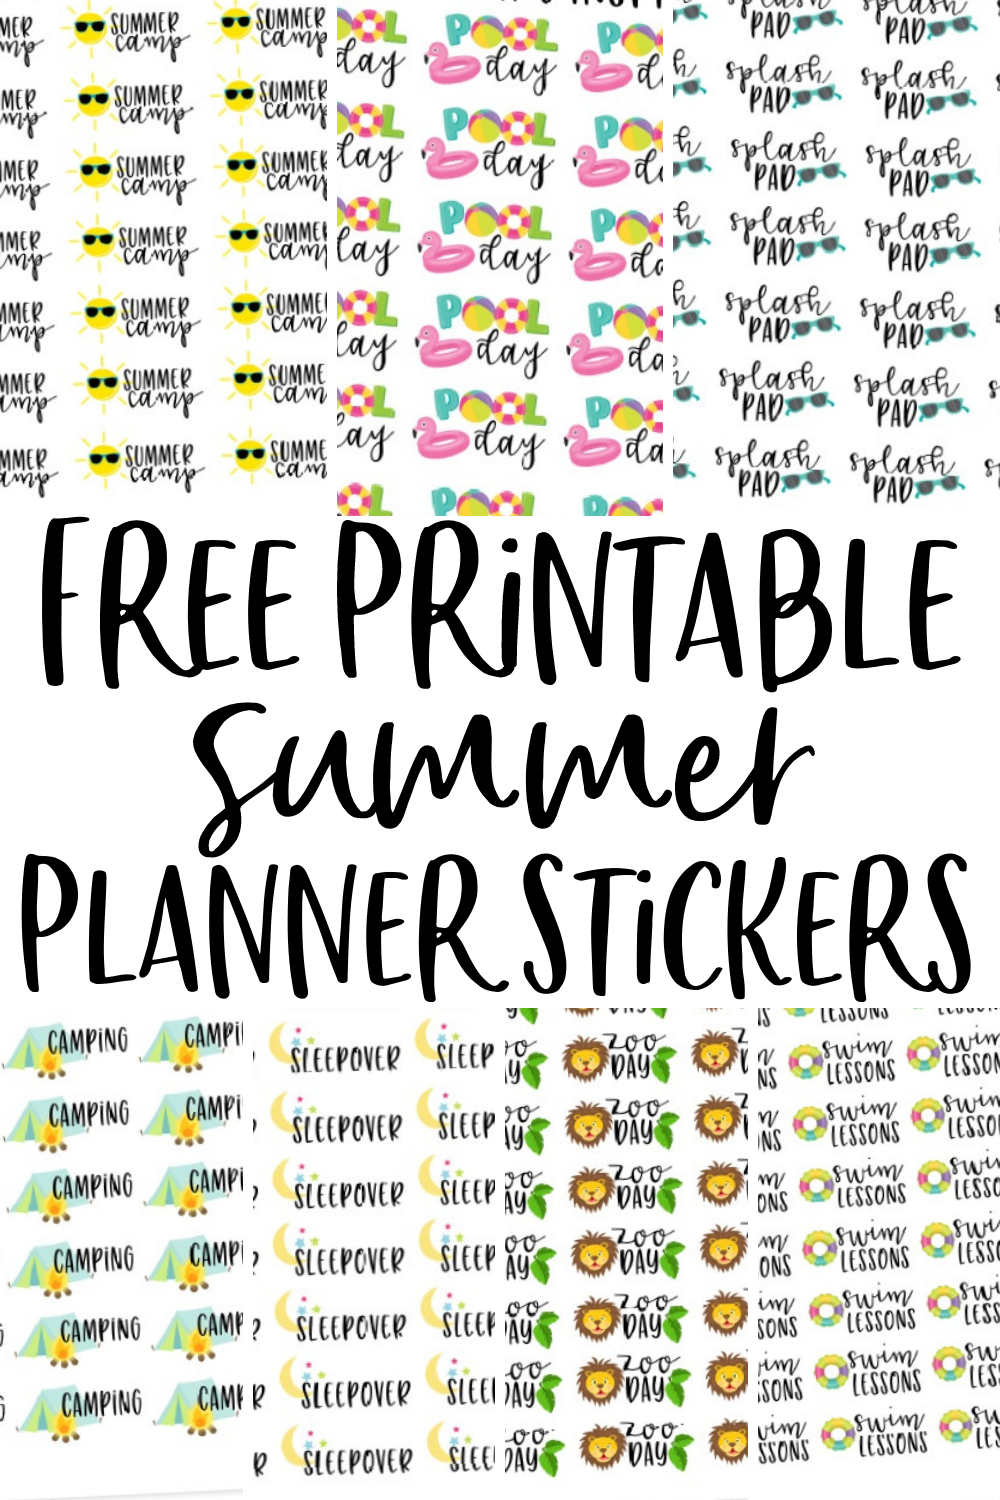 photo about Free Printable Stickers named Absolutely free Printable Planner Stickers for Summer season - Developing Influenced